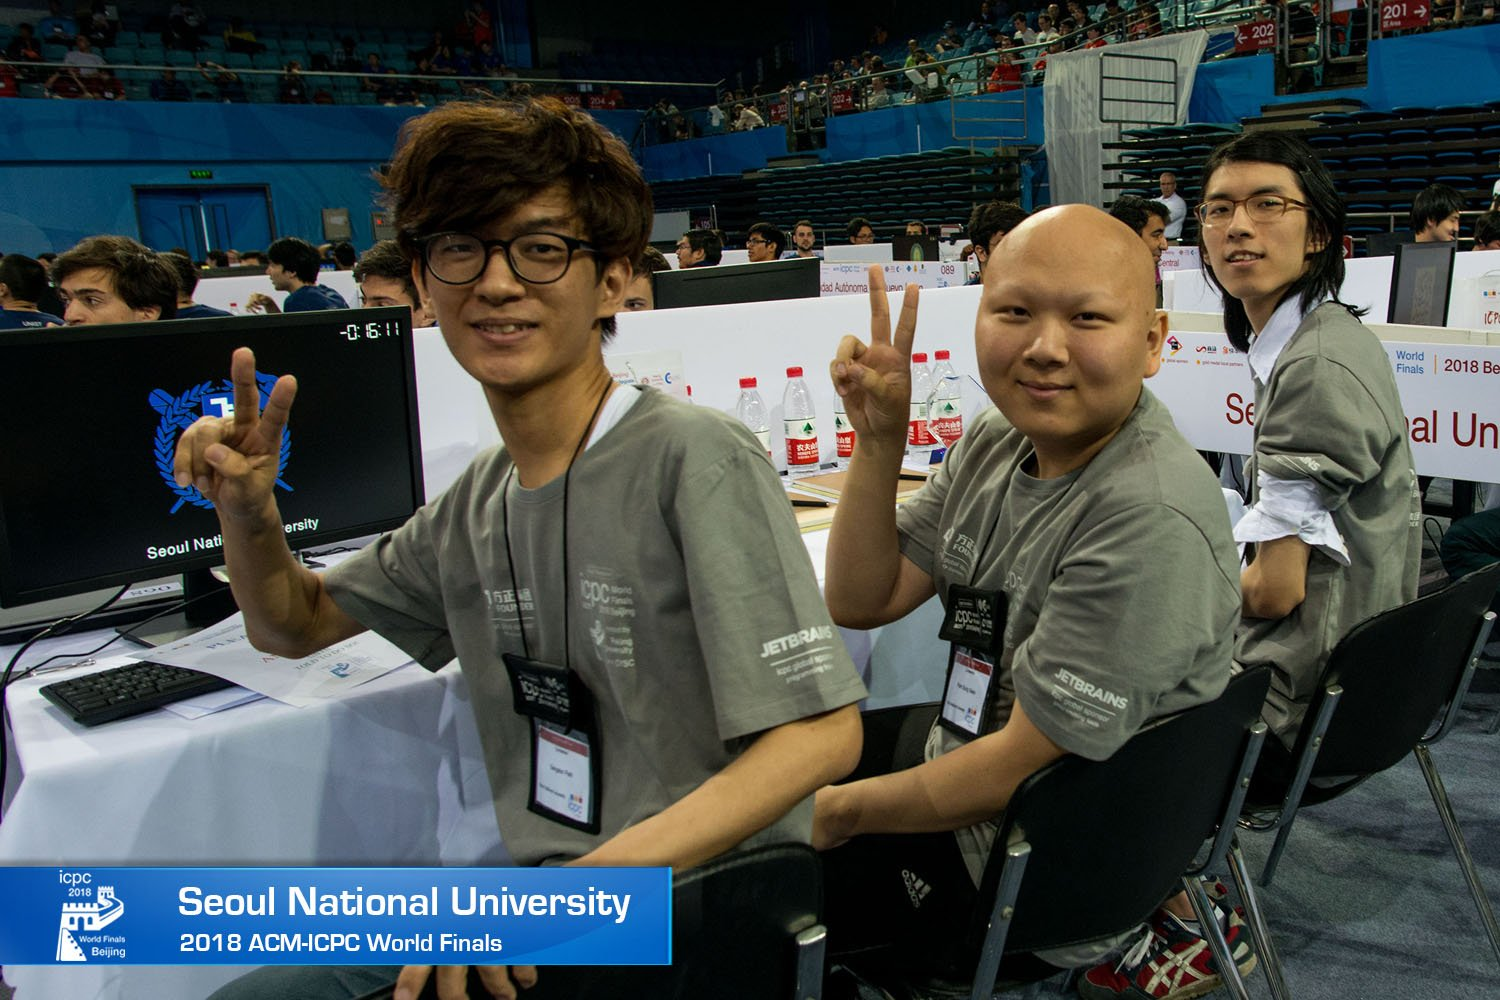 SNU Wins a Medal at the International Collegiate Programming Contest